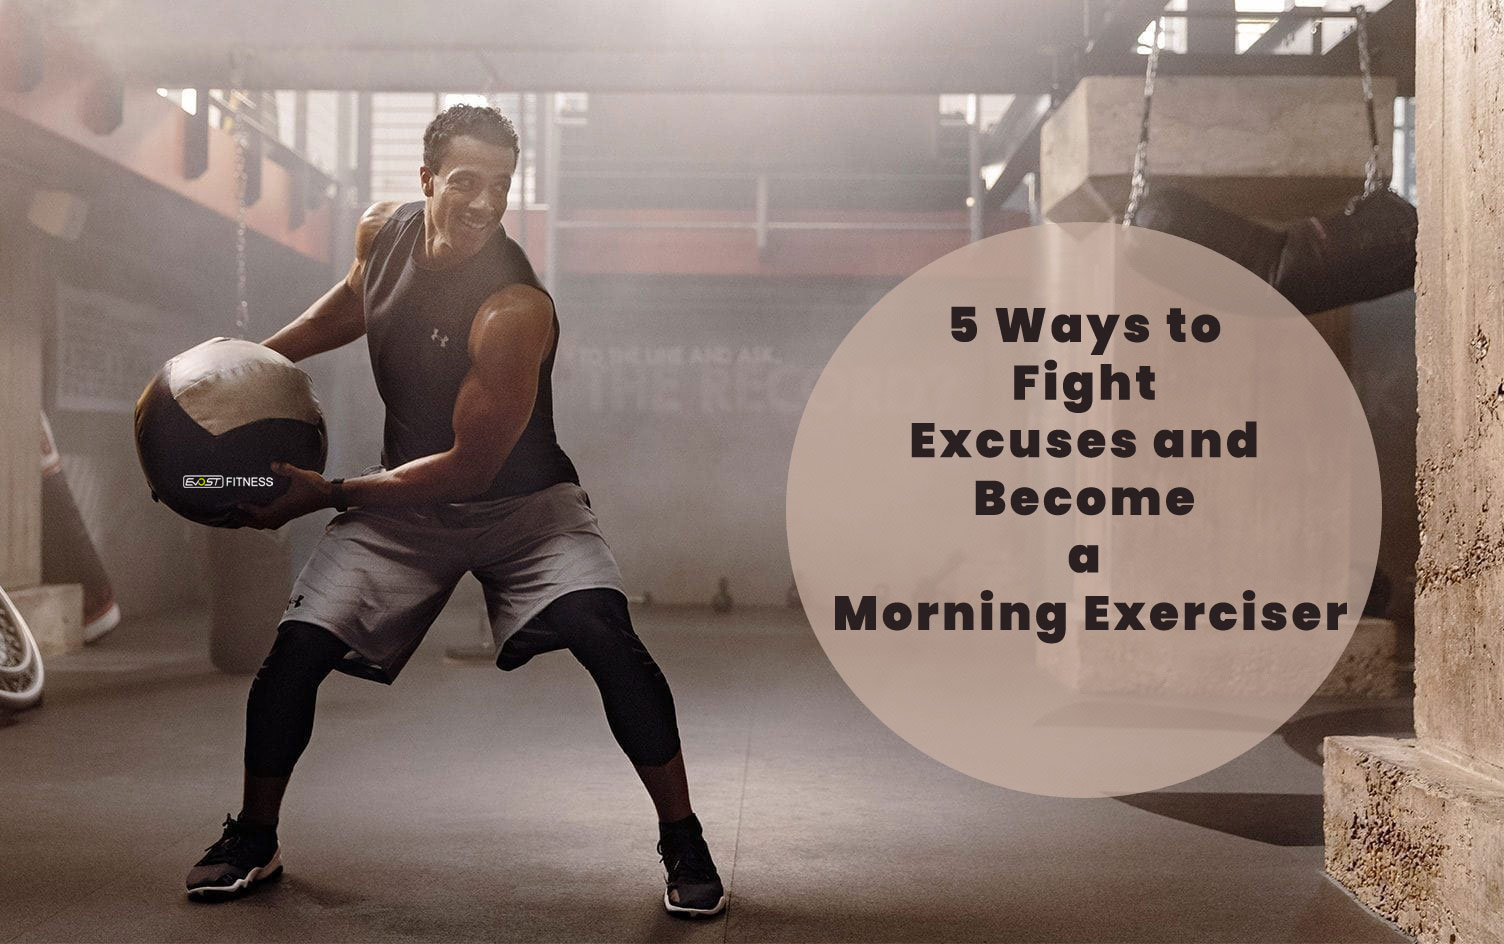 5 Ways to Fight Excuses and Become a Morning Exerciser